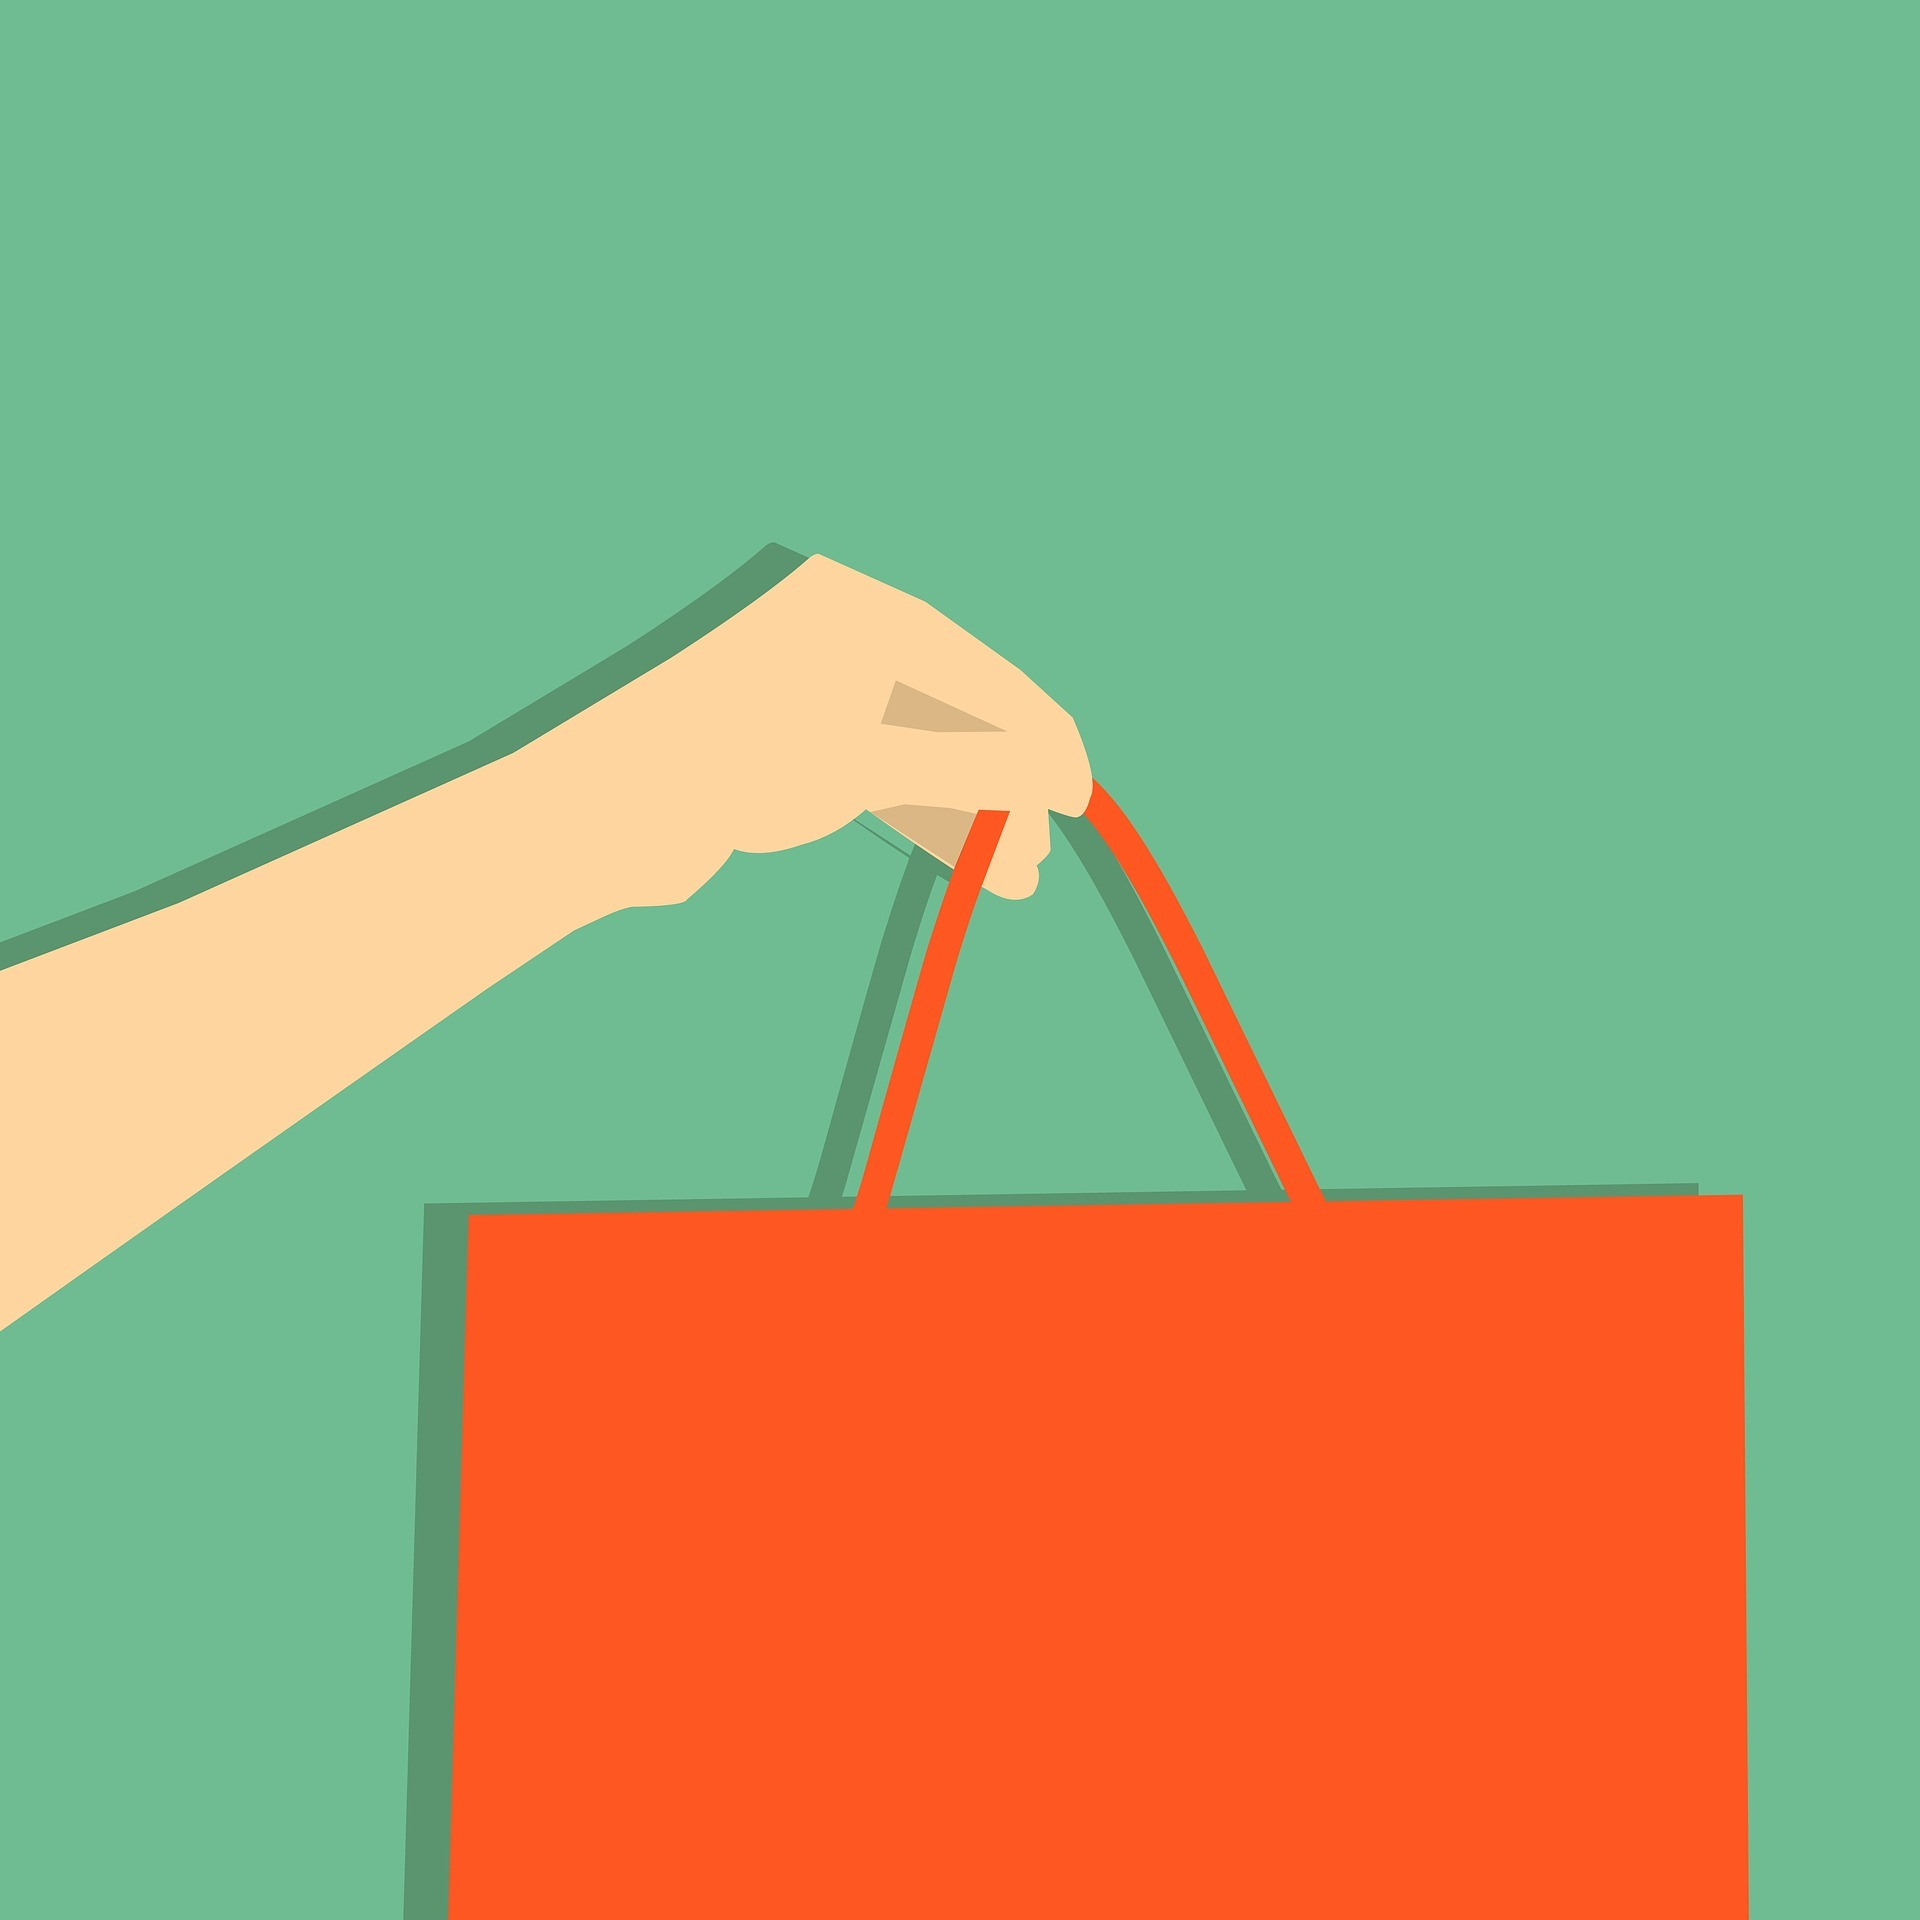 A hand holding a shopping bag